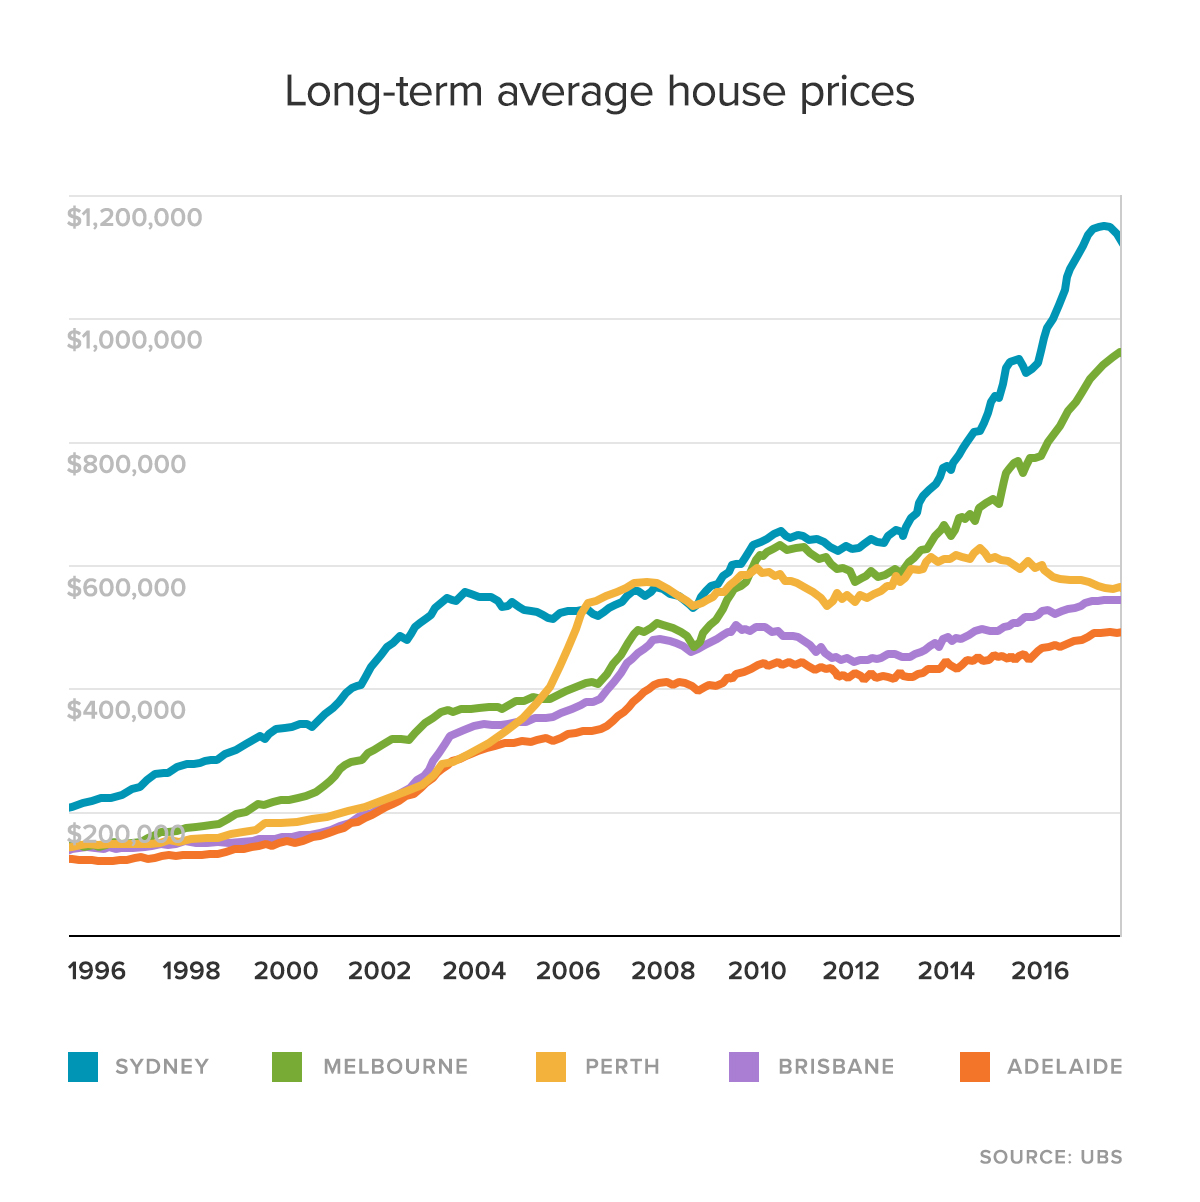 Long-term average house prices